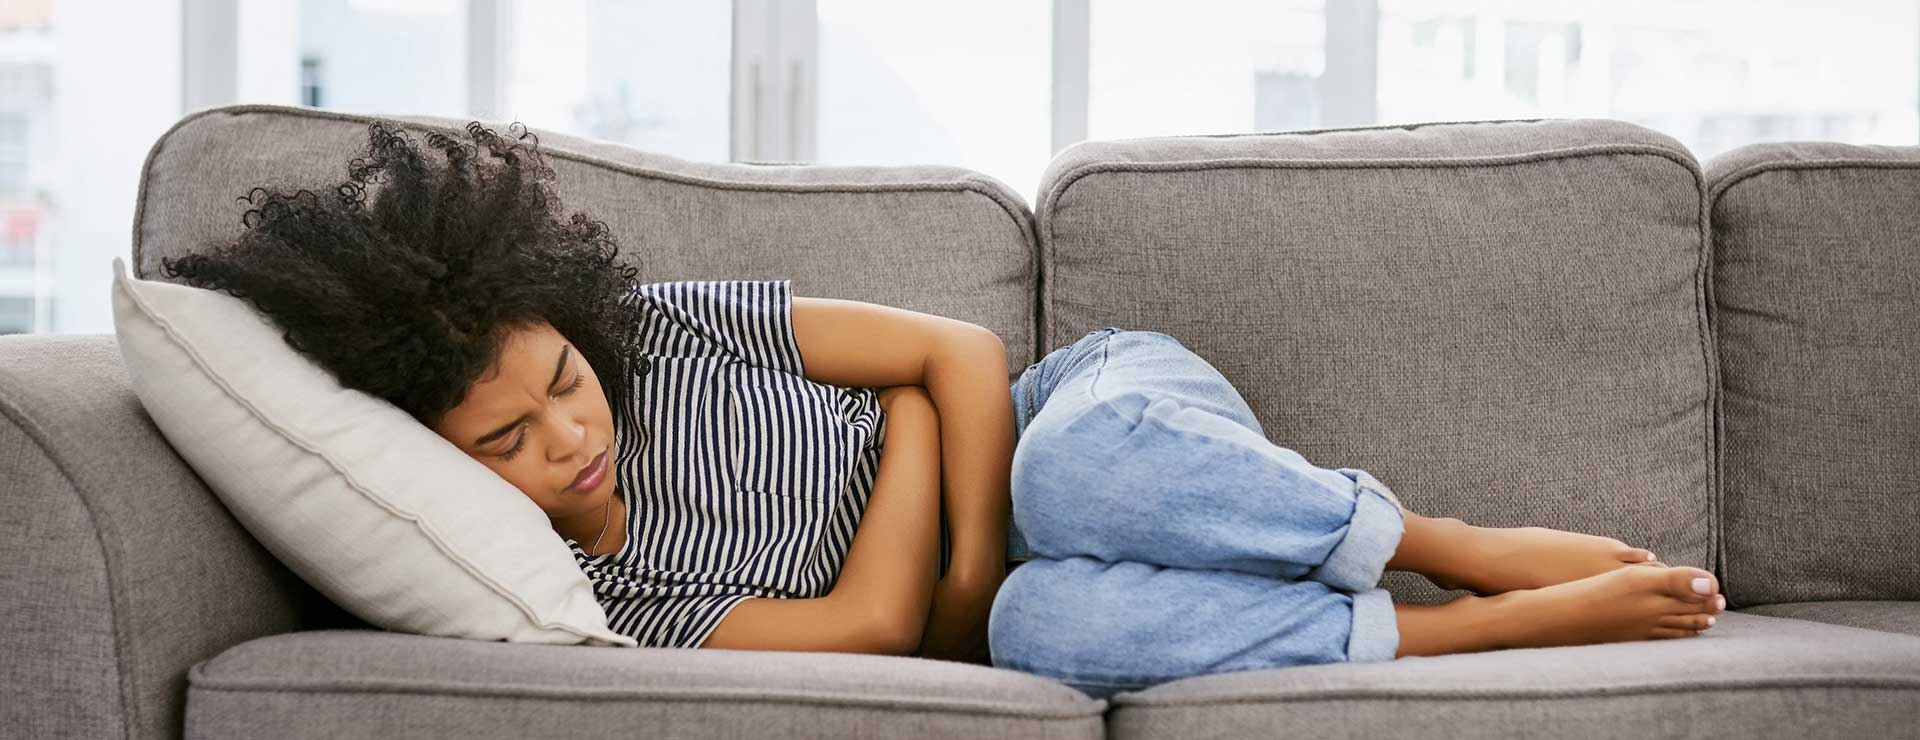 A young woman lays on her side on the couch, clutching her stomach in pain.